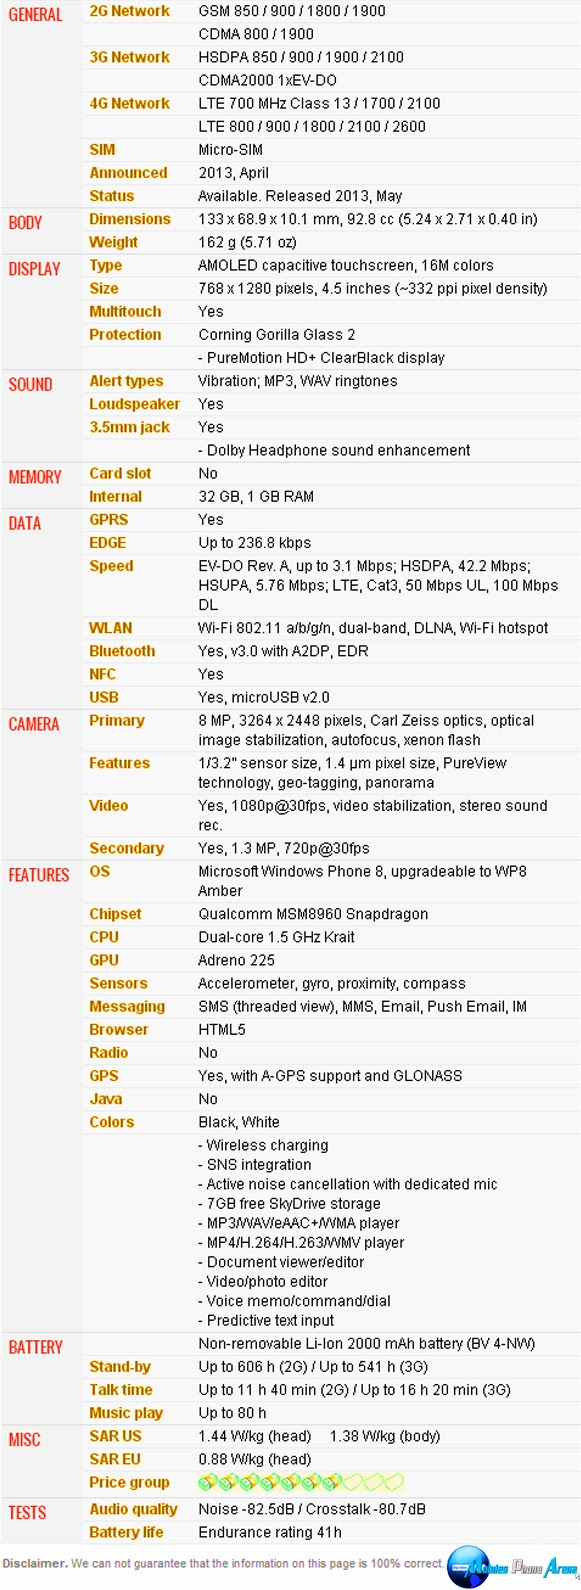 Nokia Lumia 928 - Full phone specifications Pic